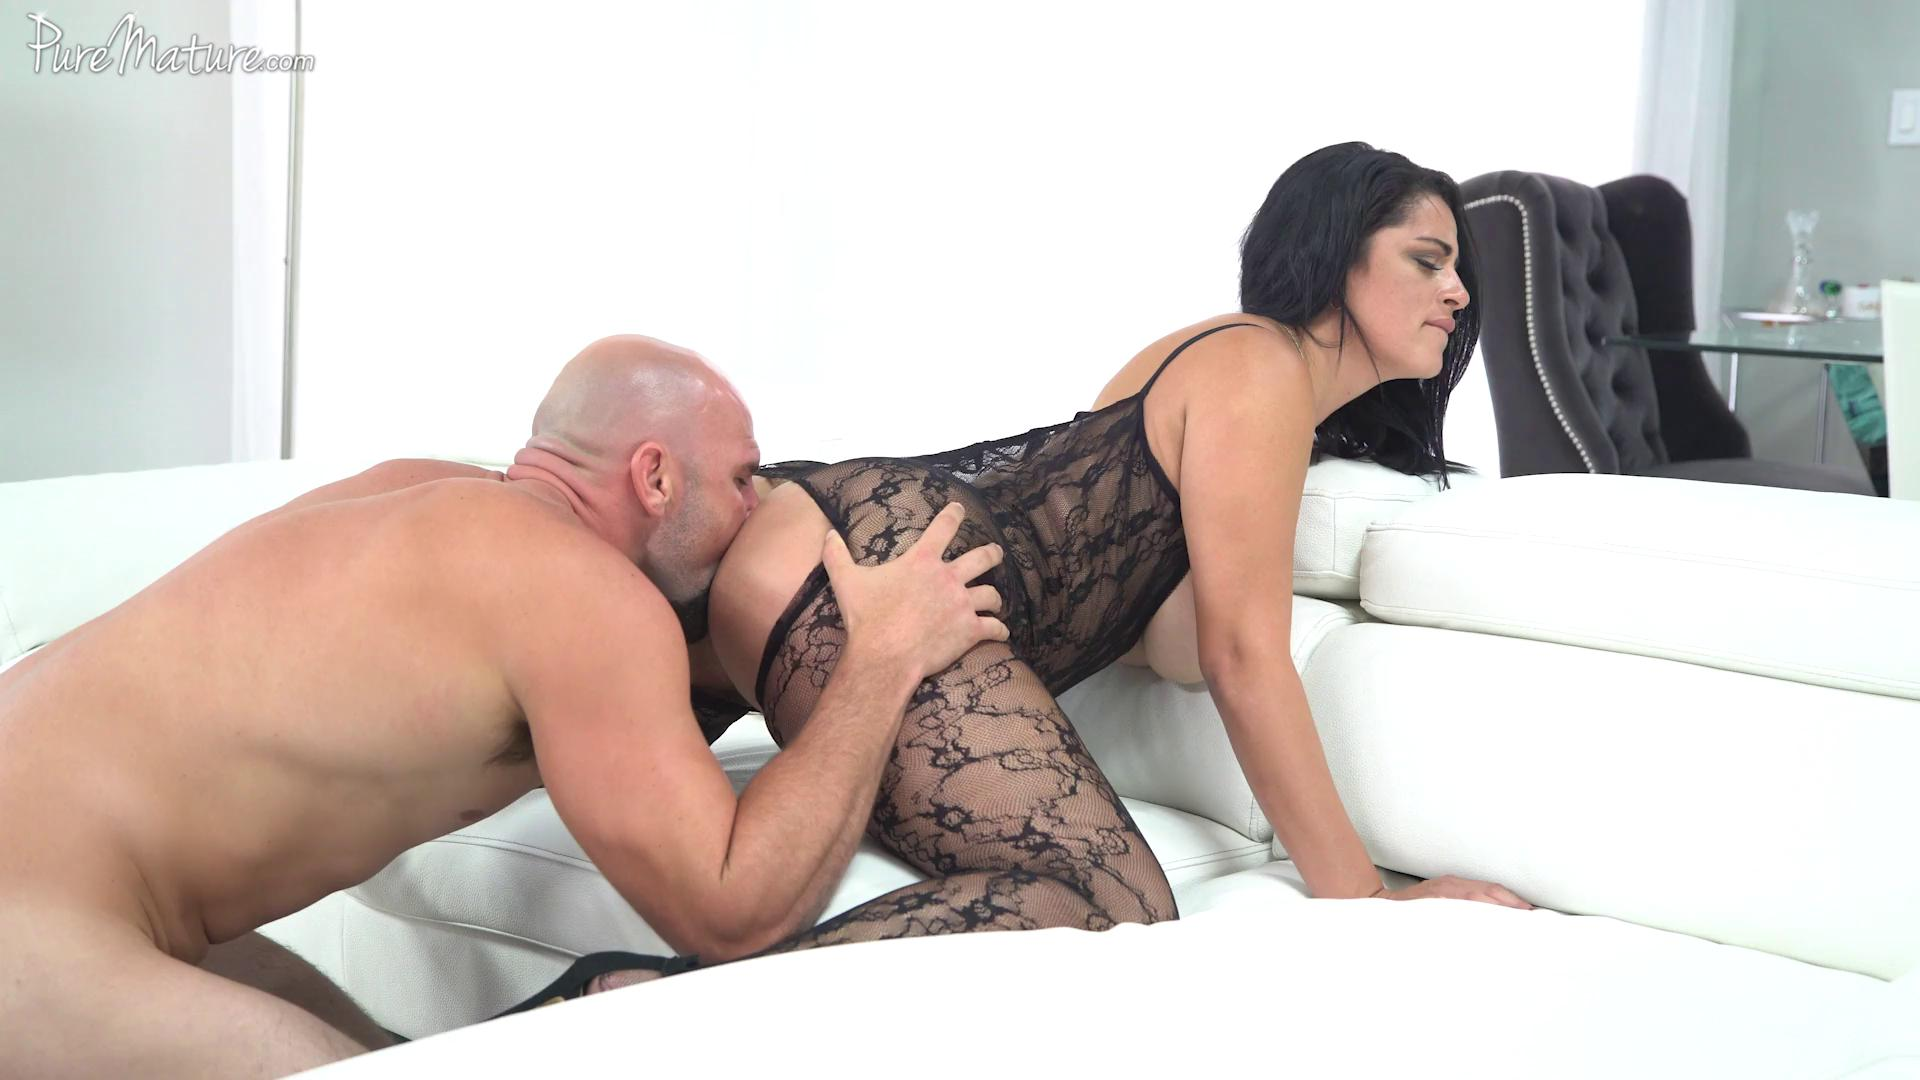 PureMature – Cristal Caraballo Passion And Lace